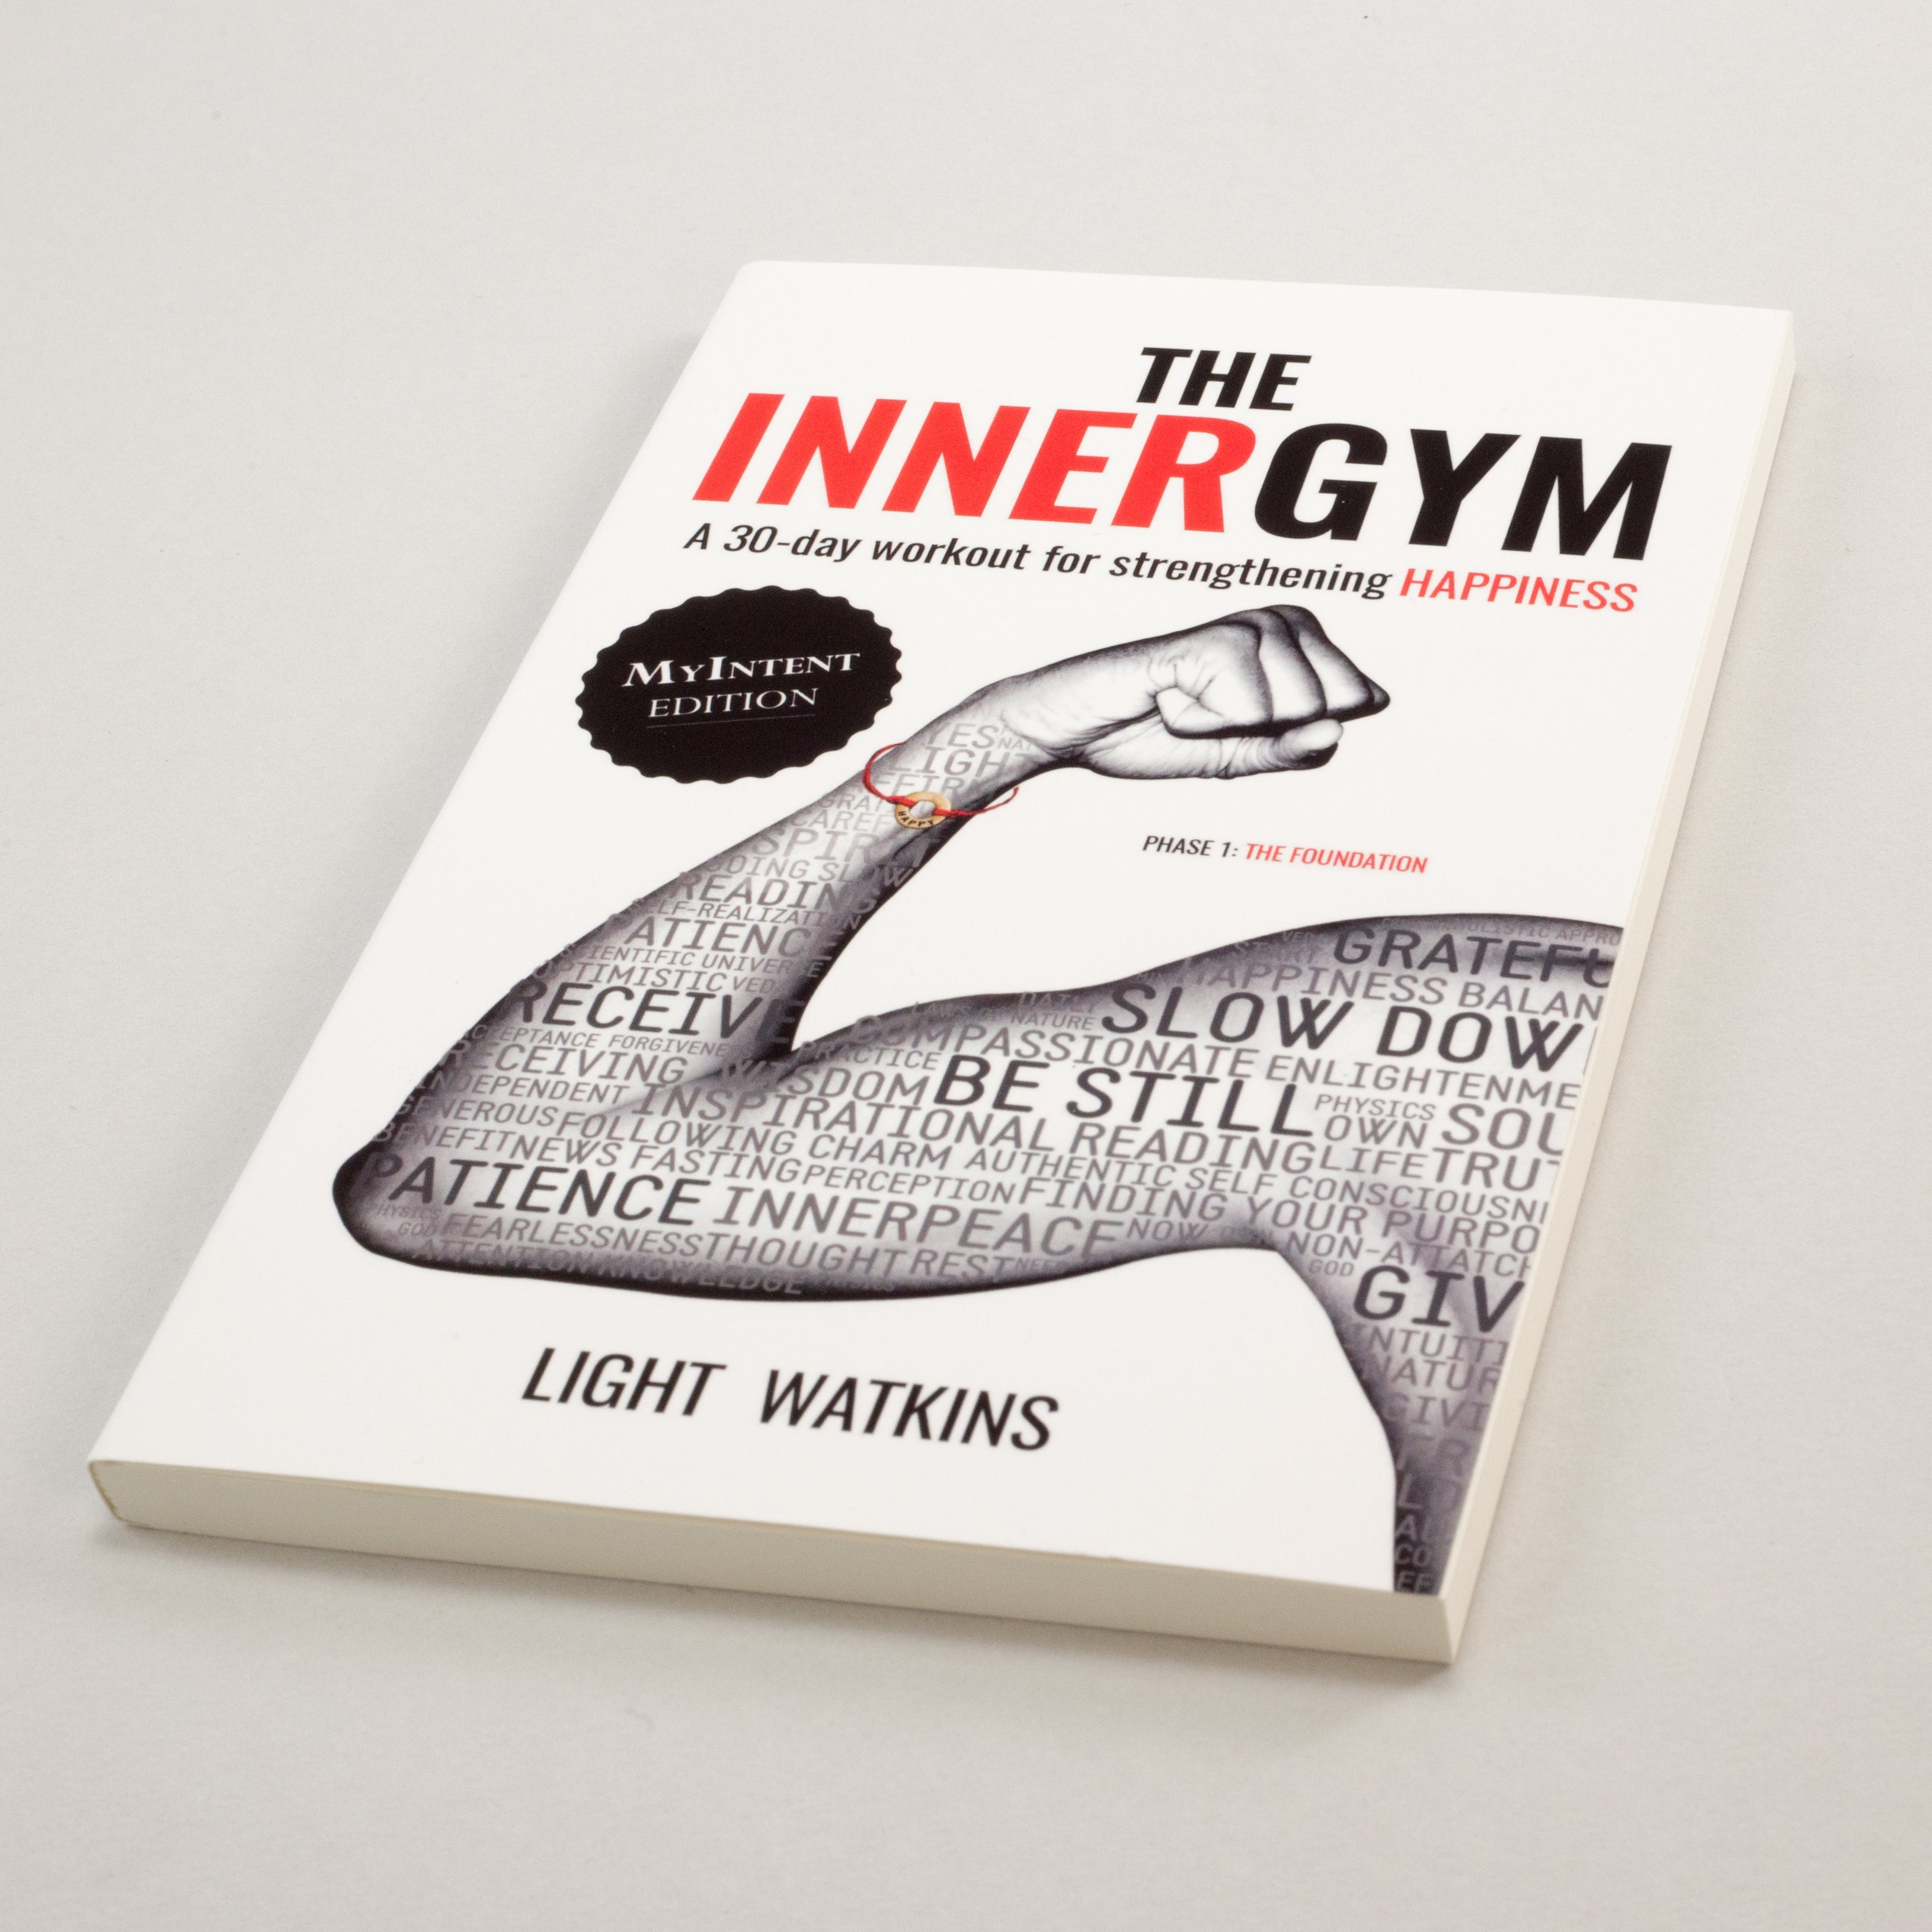 The Inner Gym book by Light Watkins is an inner workout to strengthen your